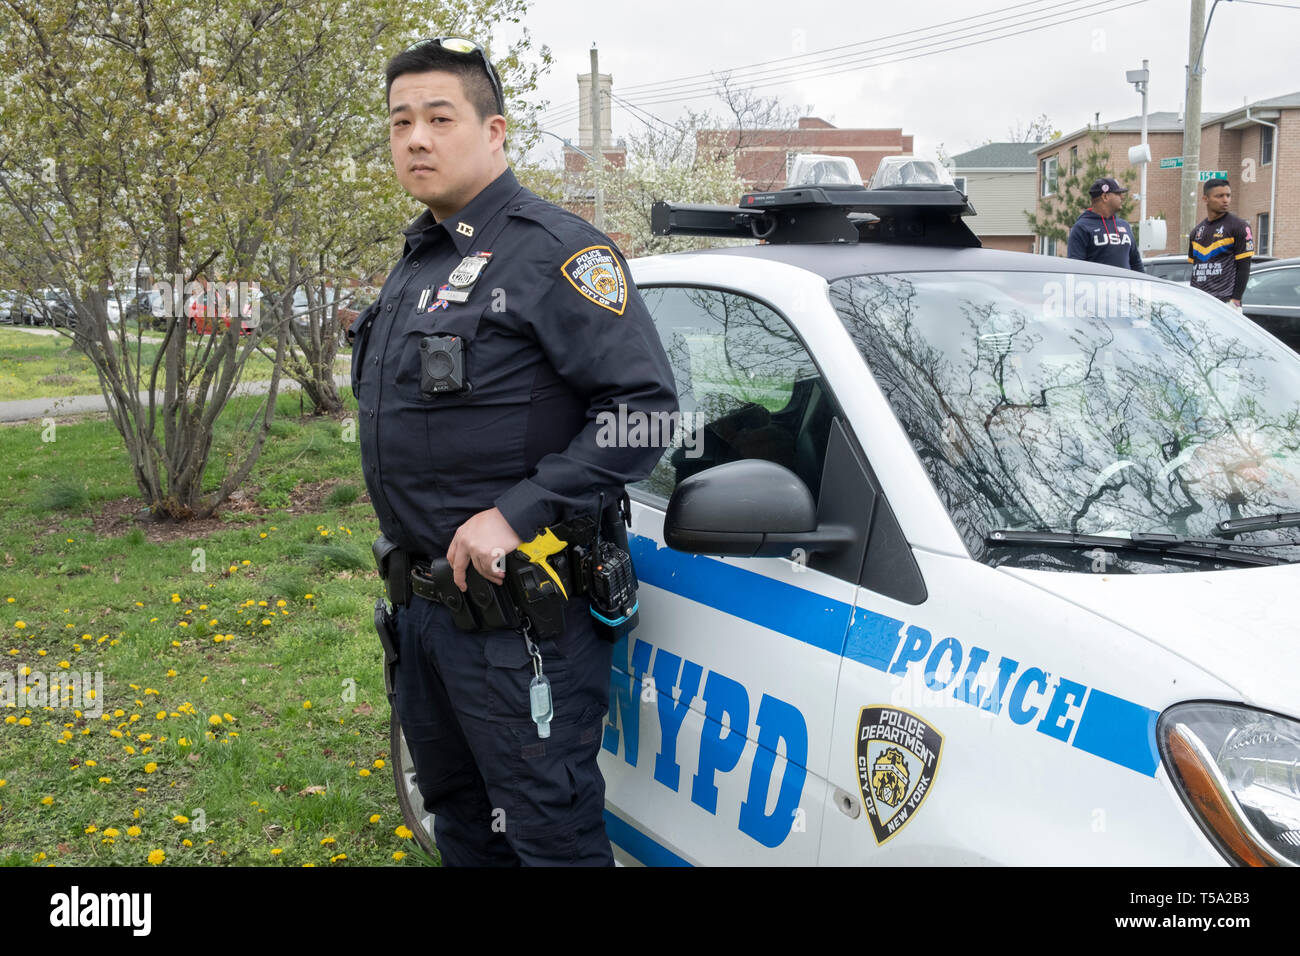 Portrait of a Chinese American police office on duty at a cricket tournament in Baisley Pond Park in Jamaica, Queens, New York City. Stock Photo